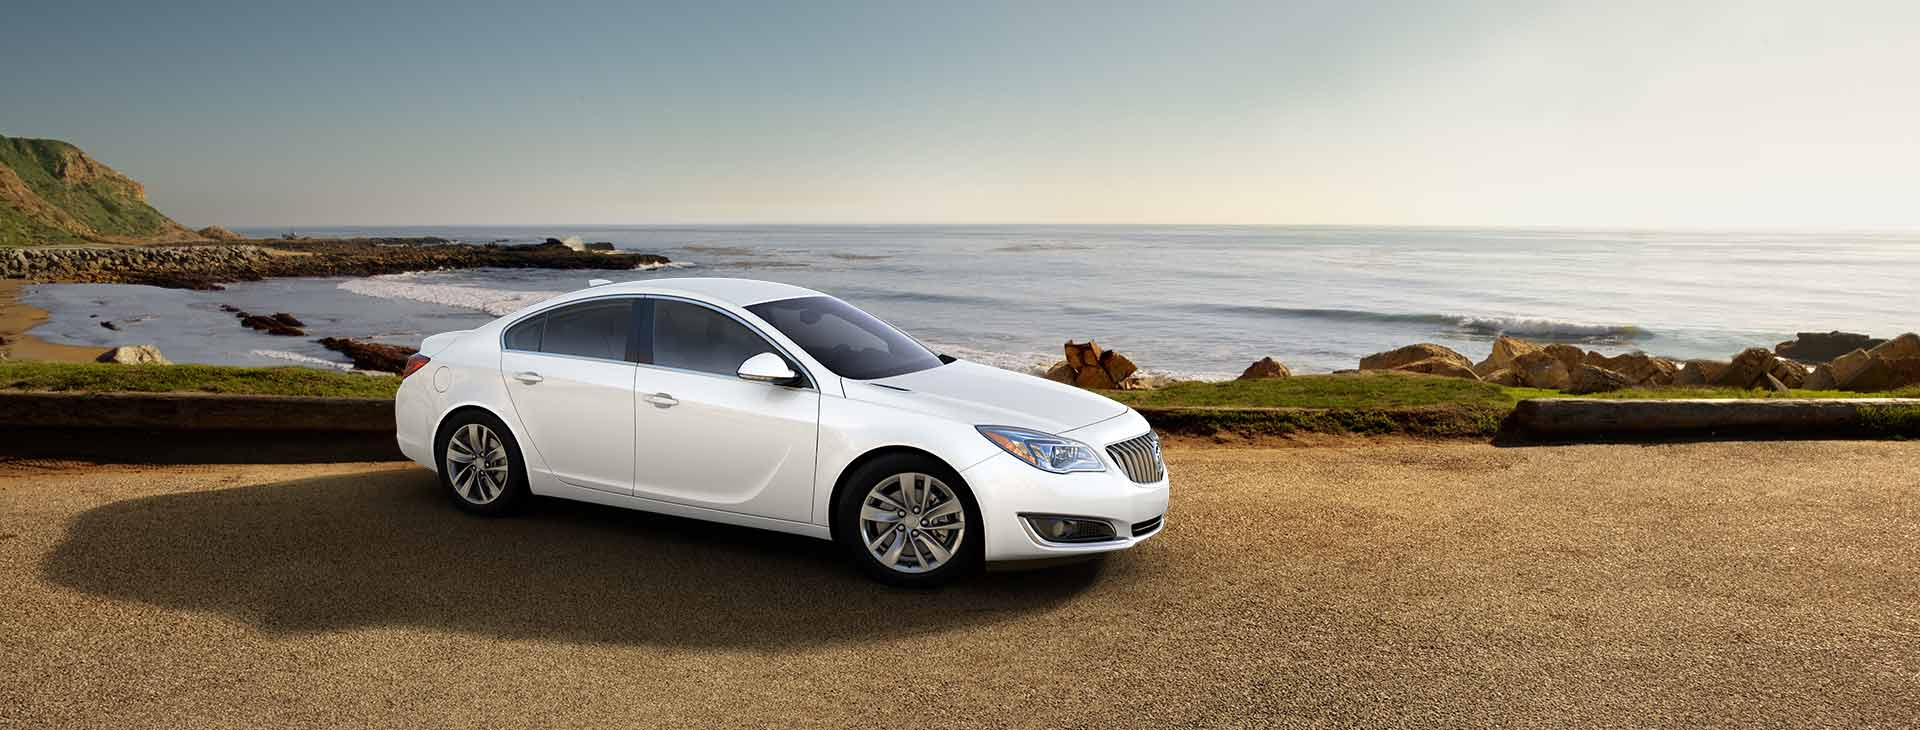 2017 Buick Regal photo - 1